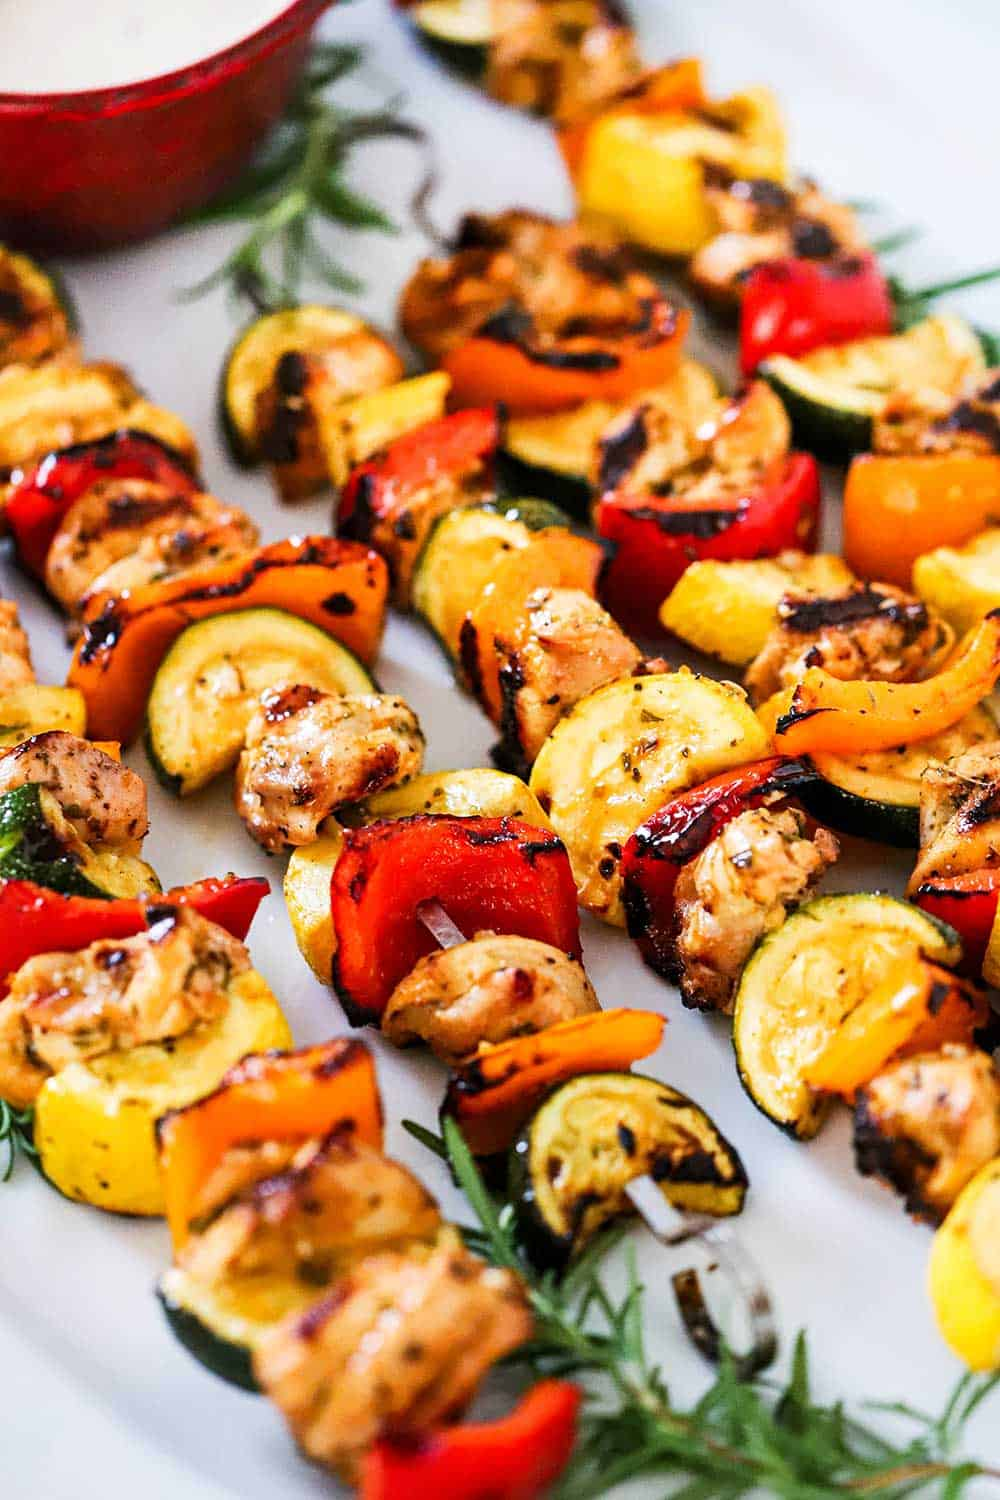 A row of 5 chicken kabobs on a white oval platter garnish with fresh rosemary sprigs and a bowl of white sauce.